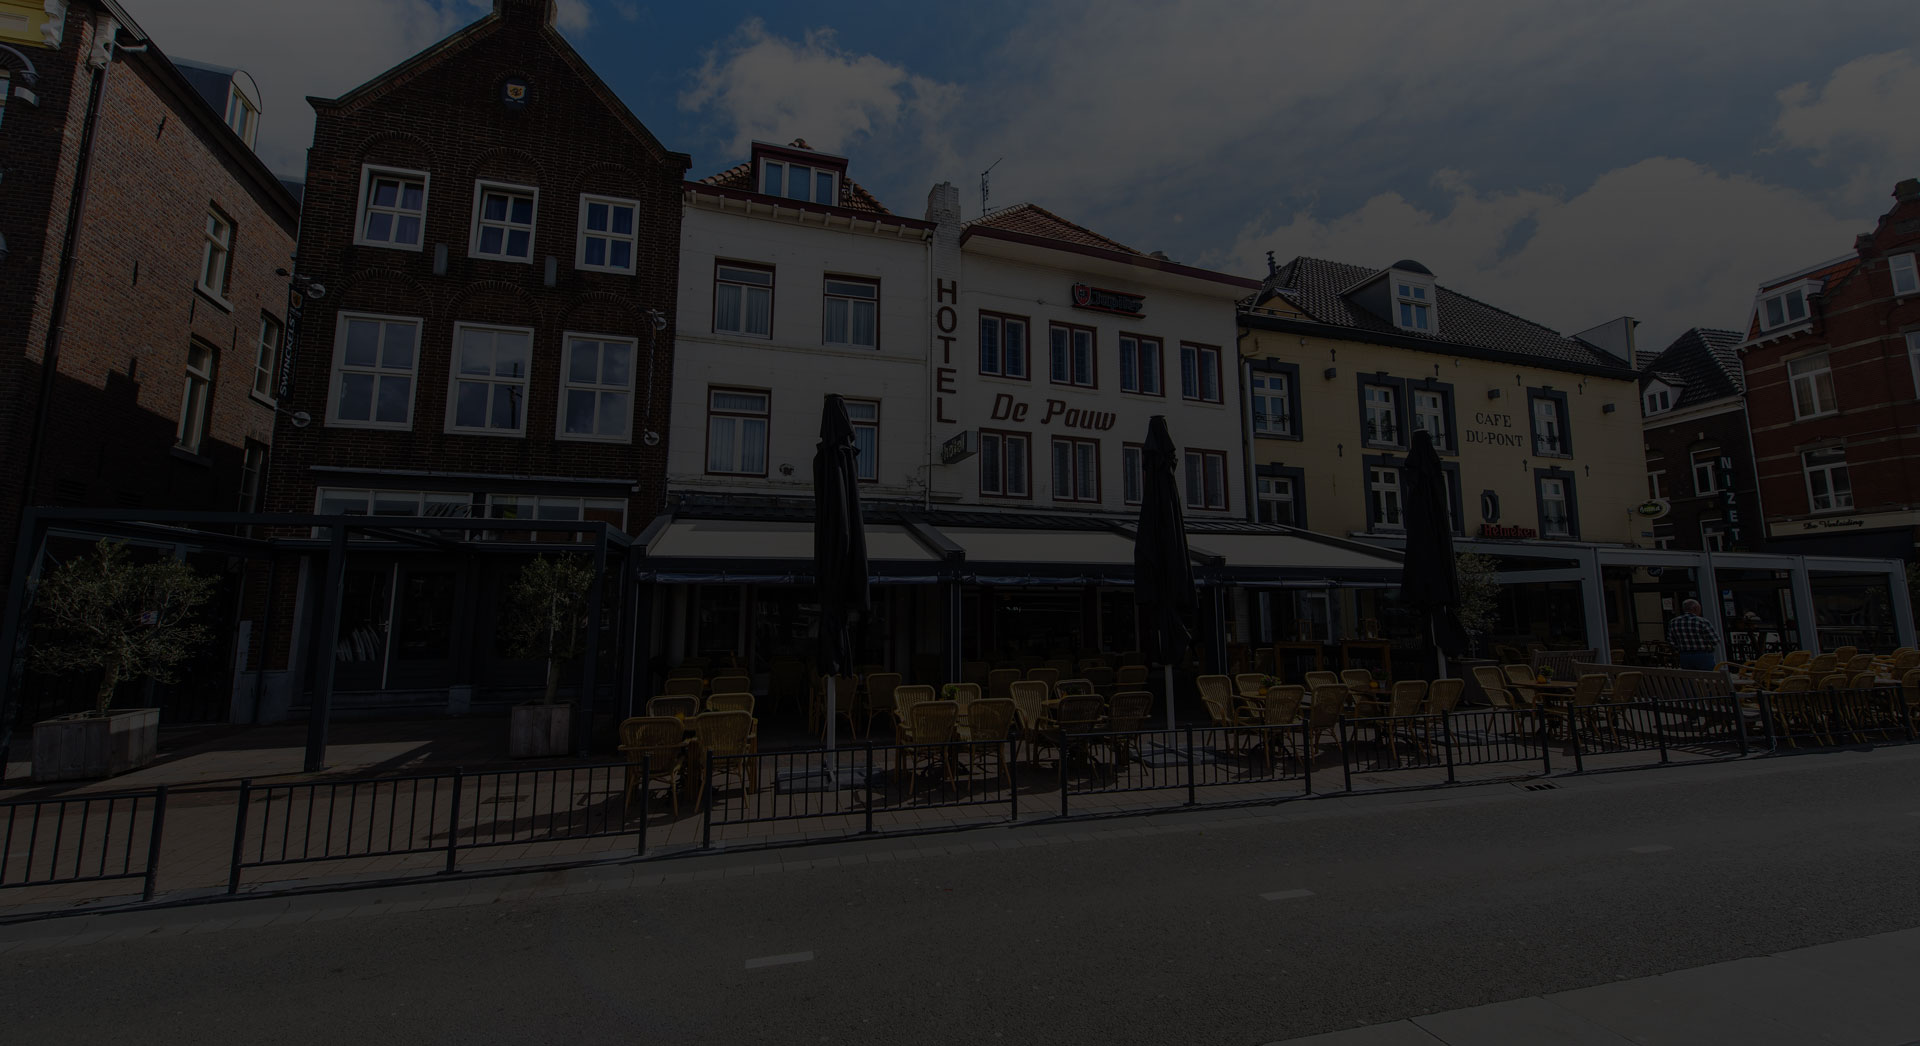 Discover what Roermond has to offer.